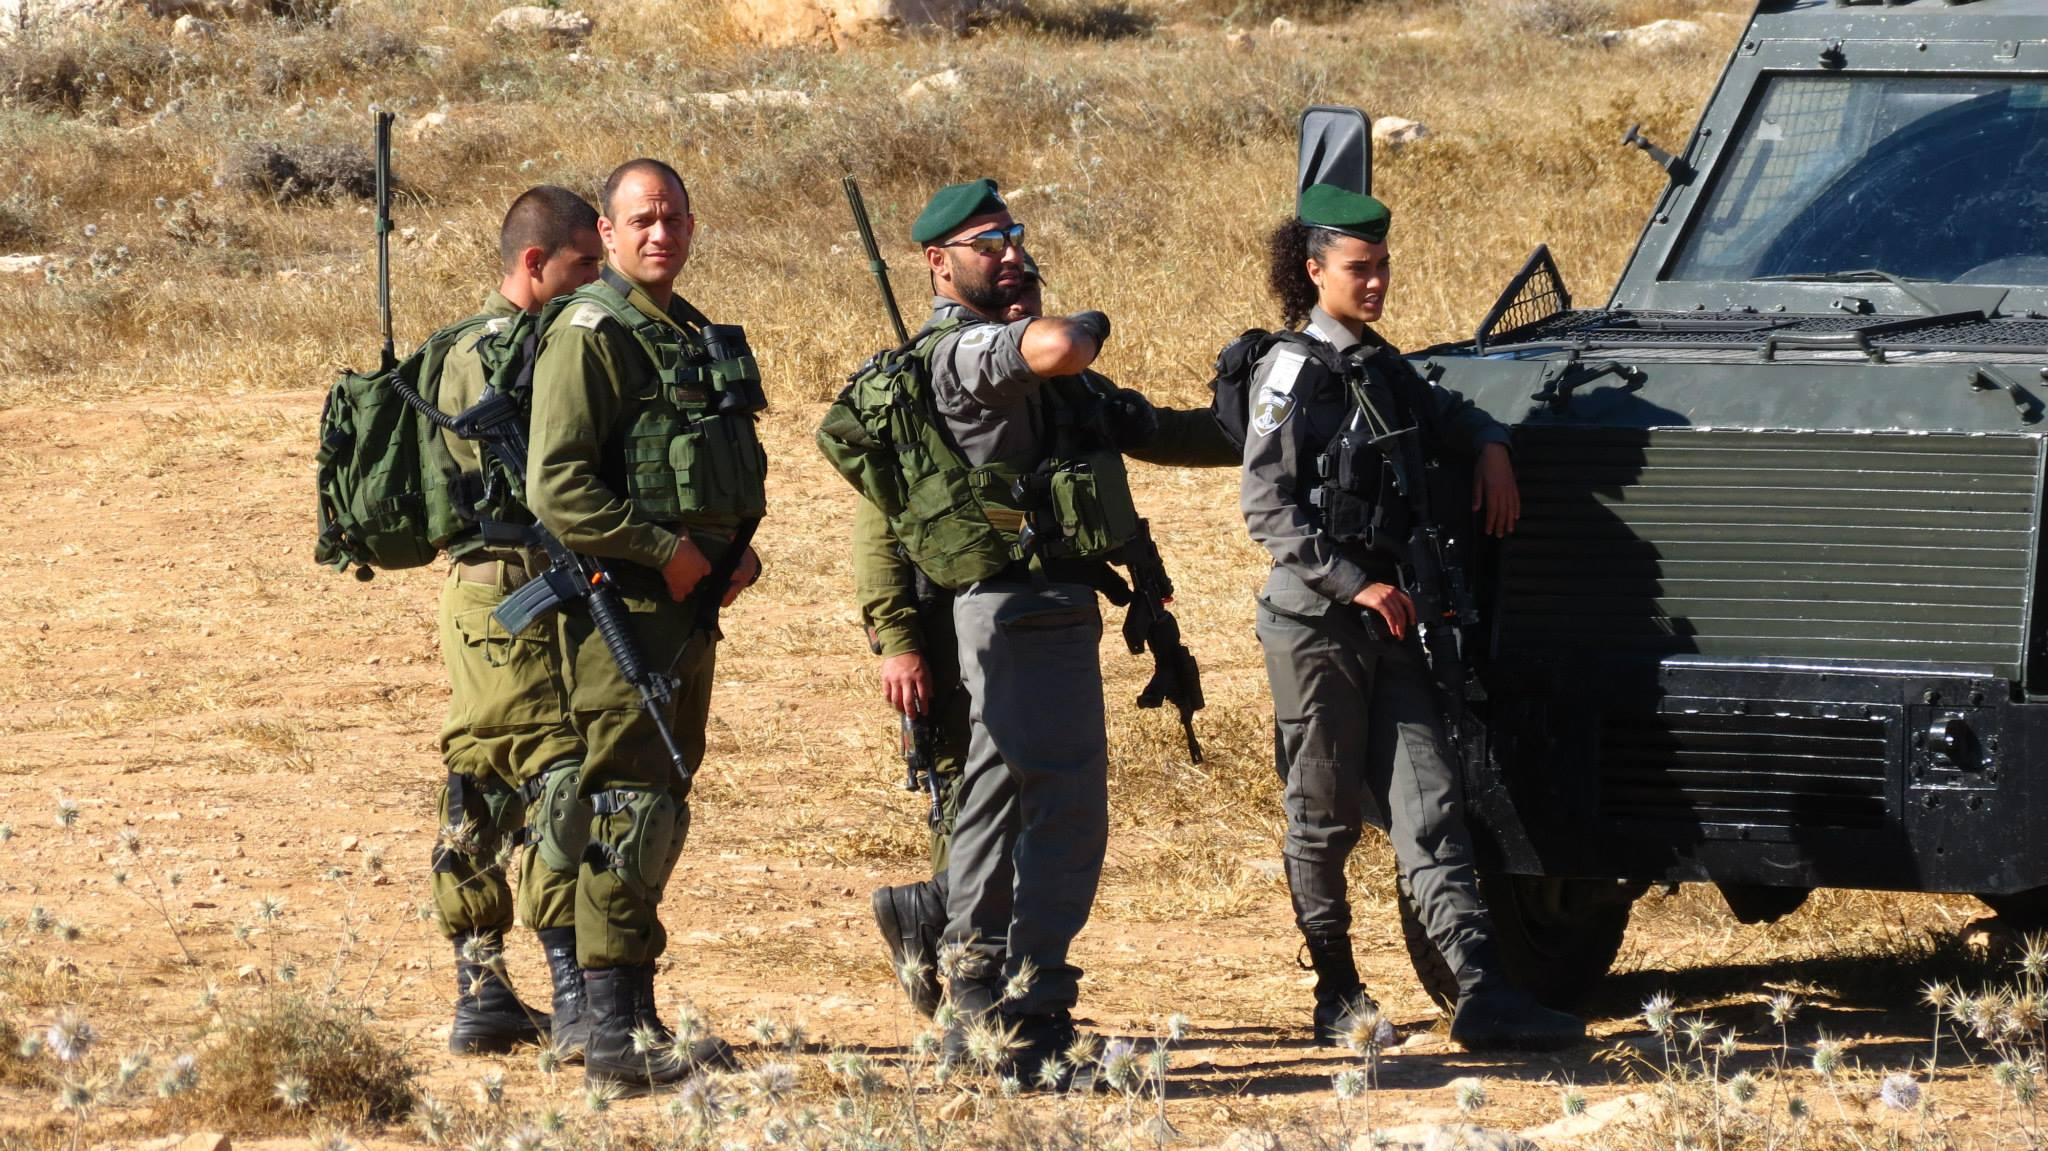 As Israeli soldiers look on, a group of Palestinian and Israeli activists pleacefully reclaim for a Palestinian family what is rightfully theirs. South Hebron. Credit: Guy Batavia